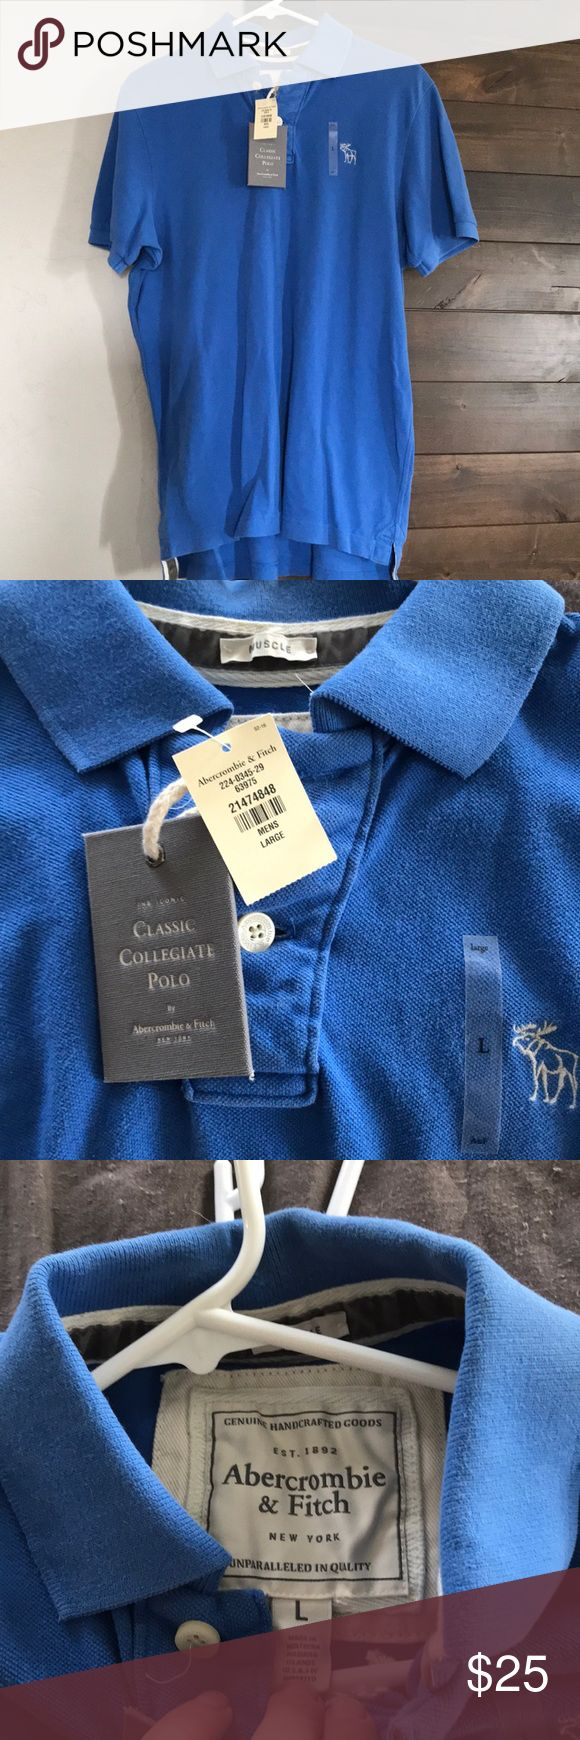 Abercrombie & Fitch NWT men's polo blue We bought this shirt for our groomsmen for a beach wedding but didn't end up going with the color.  NWT Abercrombie men's size L classic collegiate collection Abercrombie & Fitch Shirts Polos